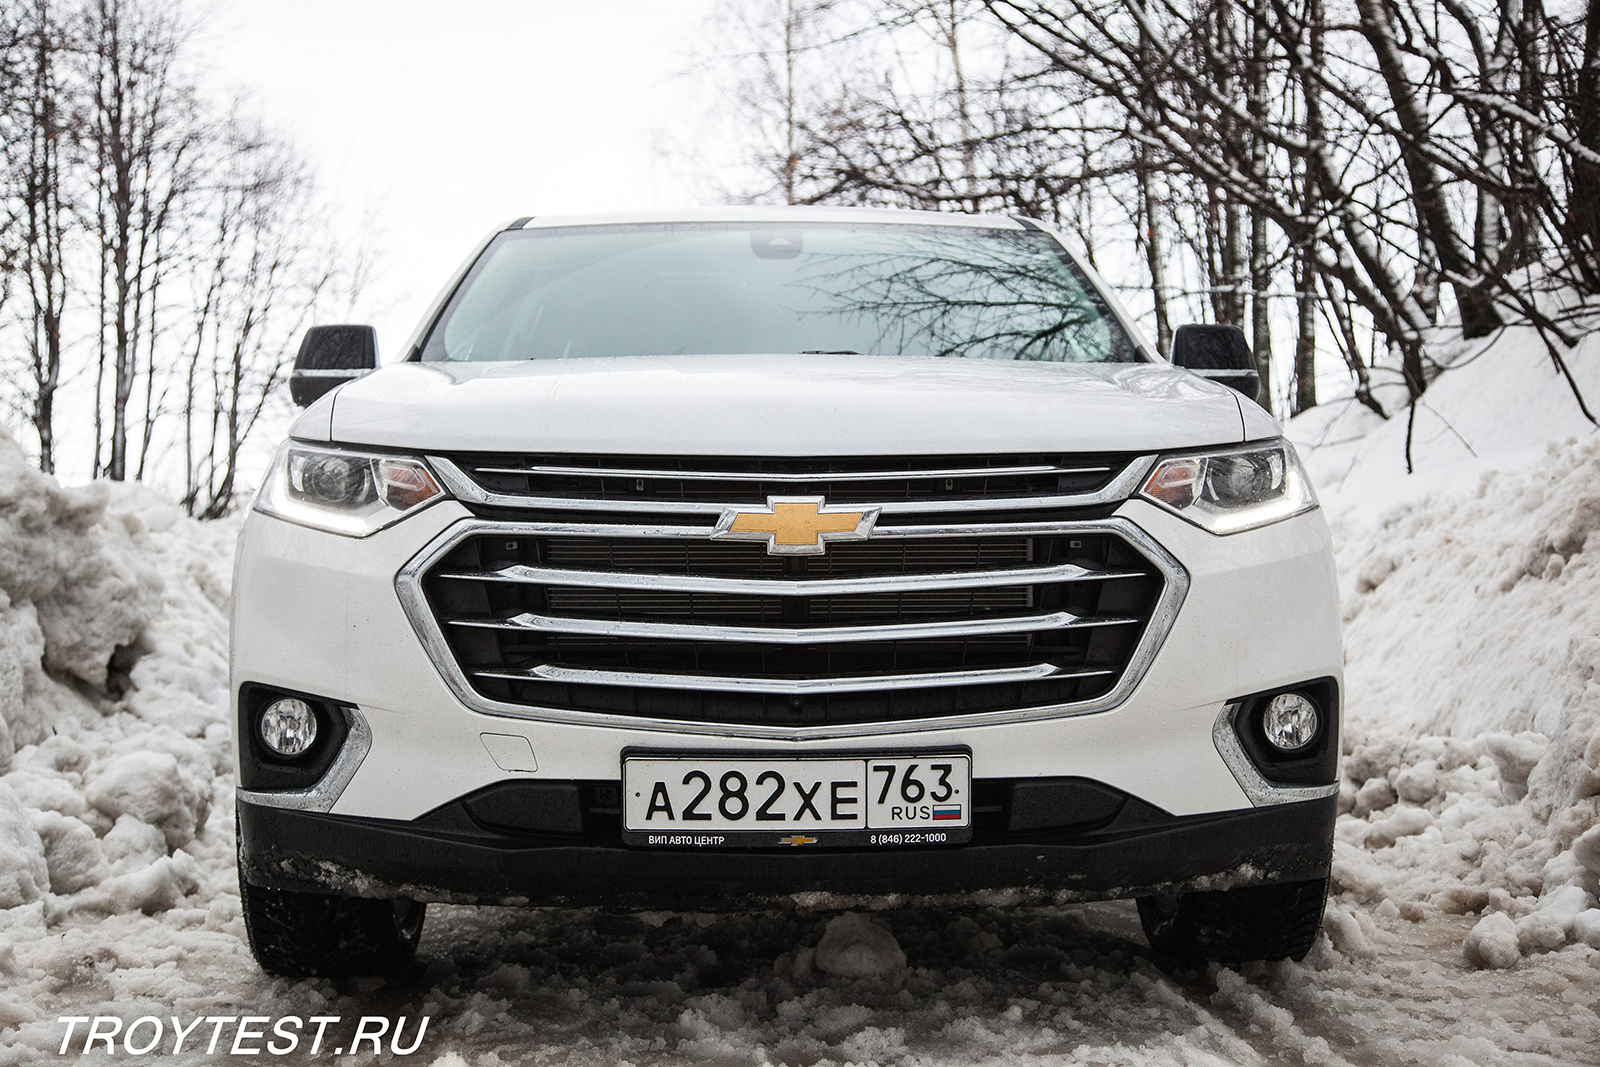 chevrolet, traverse, testdrive, review, troytest, andrey troy